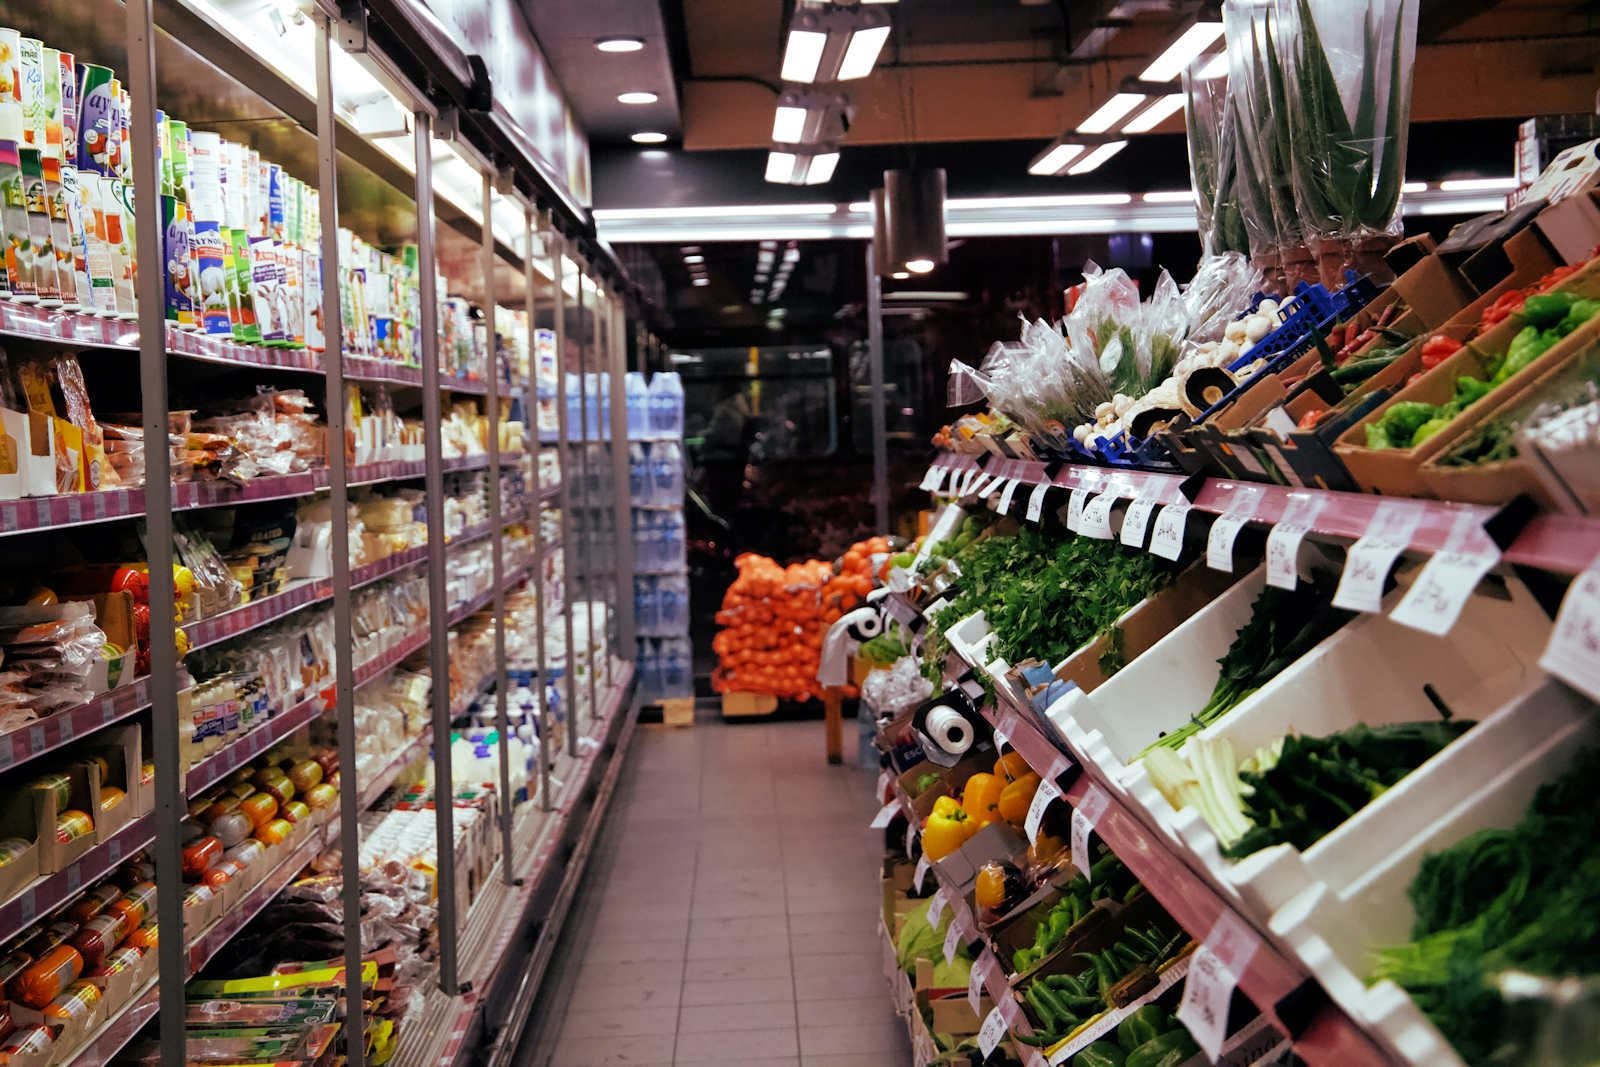 The Green Heart Grocer of Leeming